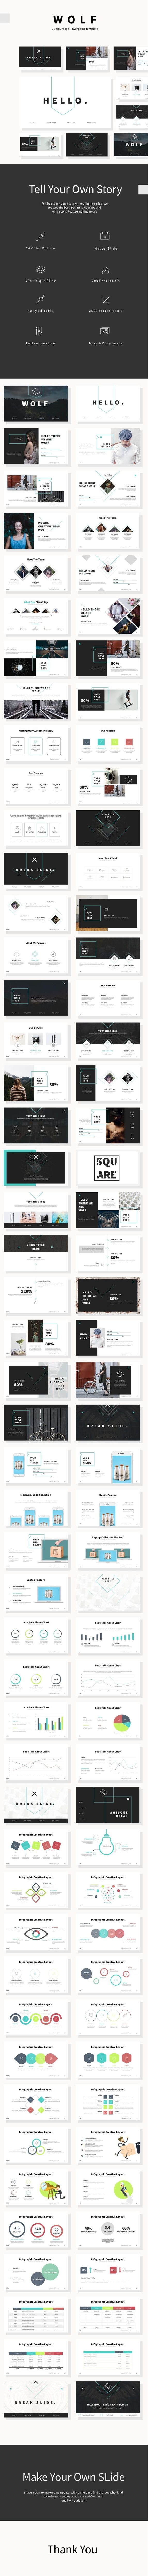 Wolf Multipurpose Theme — Powerpoint PPTX #wolf #simple • Available here → https://graphicriver.net/item/wolf-multipurpose-theme/17522709?ref=pxcr